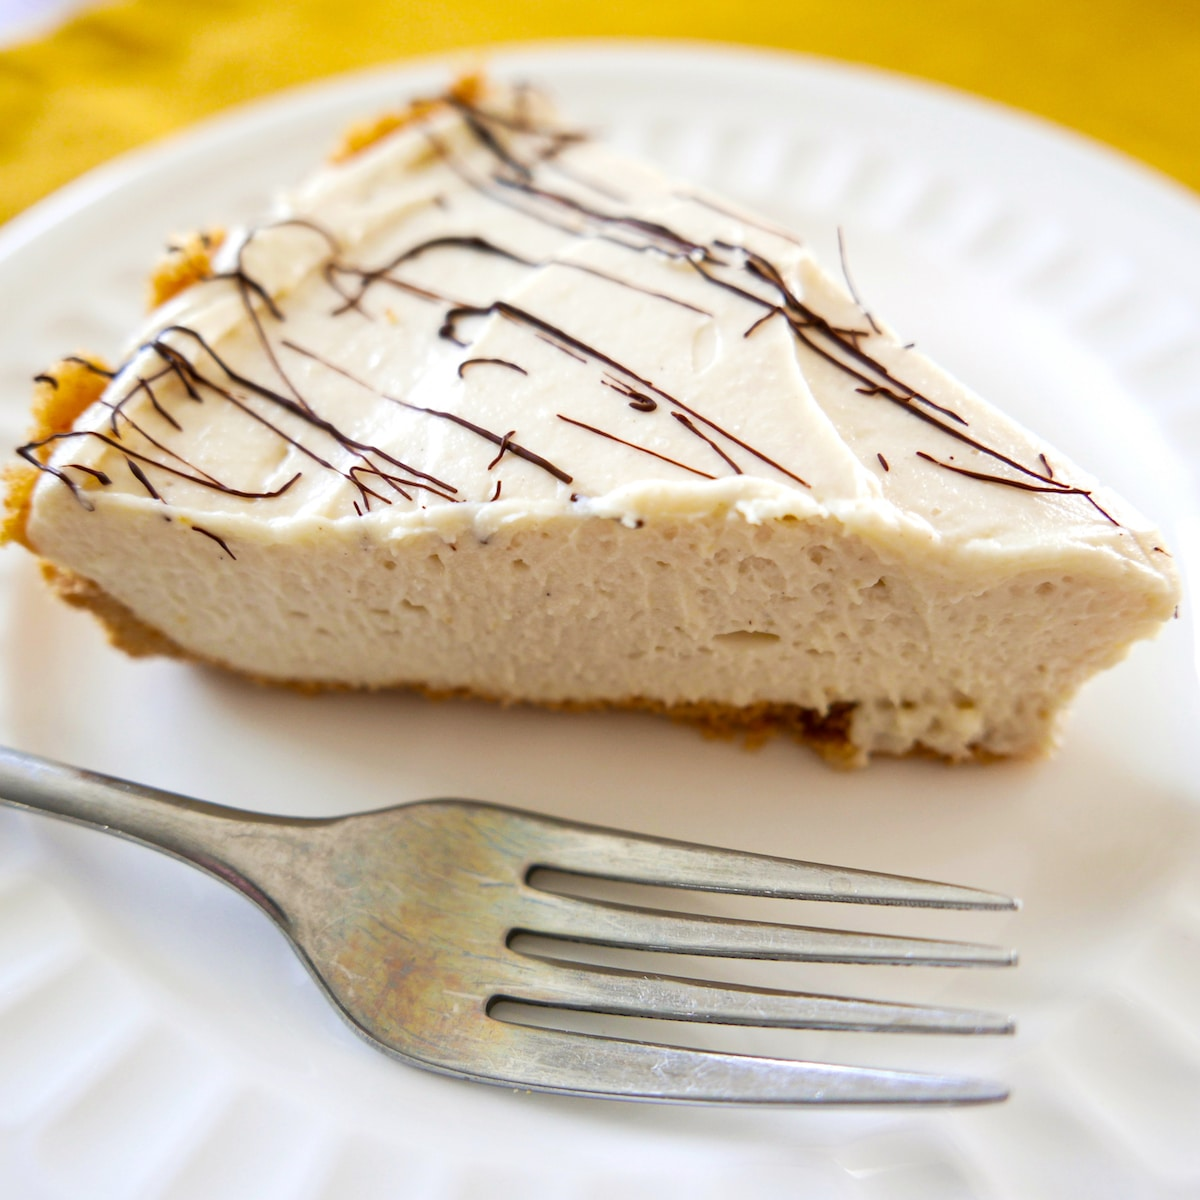 slice of tahini cheesecake on plate with fork